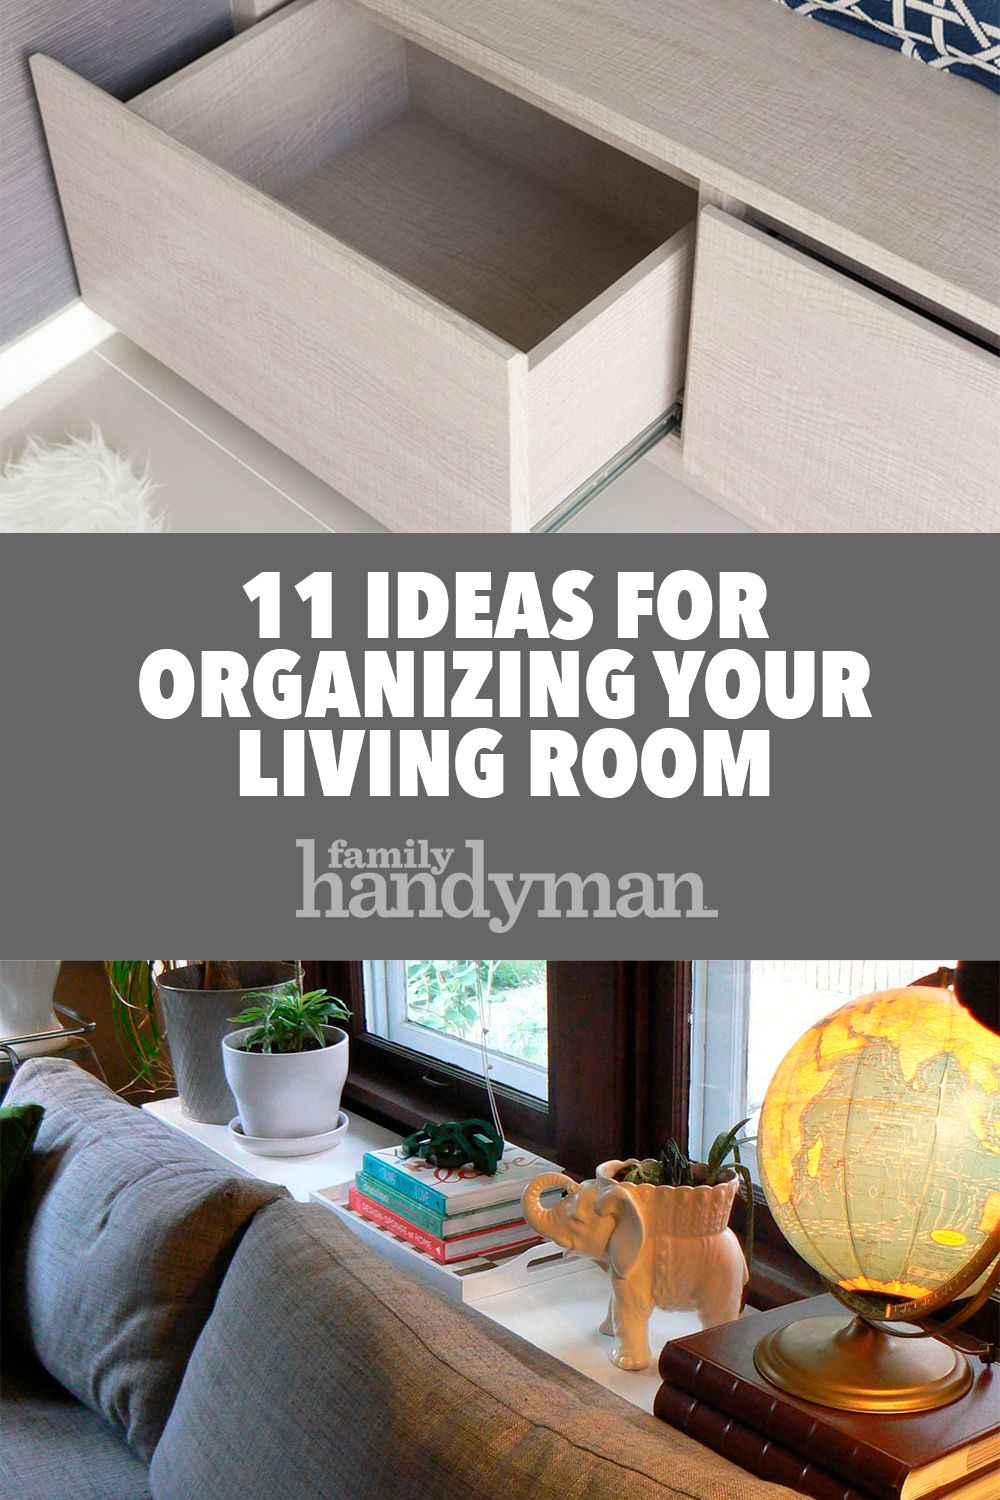 11 Ideas For Organizing Your Living Room Interior Design Living Room Living Room Spaces Living Room Organization #organizing #a #small #living #room